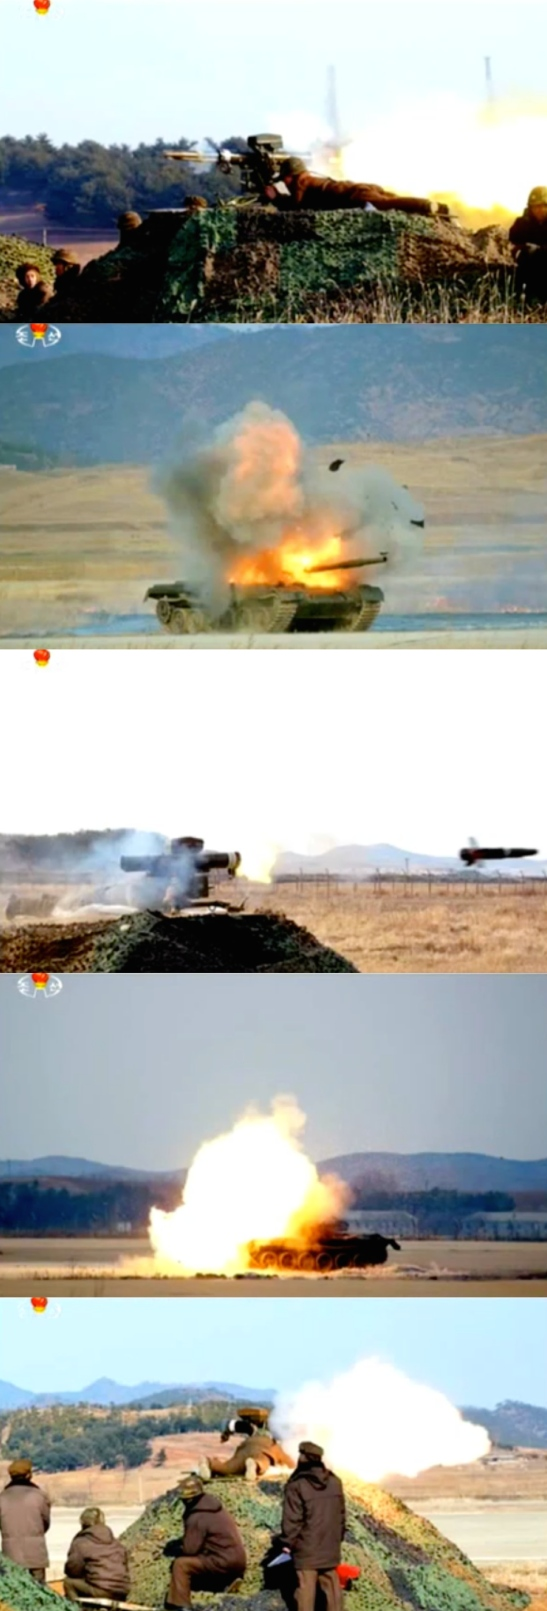 Stills aired on Korean Central Television [KCTV] showing what DPRK state media described as a portable laser guided anti-tank weapon (Photos: KCTV/KCNA/NK Leadership Watch screen grab).